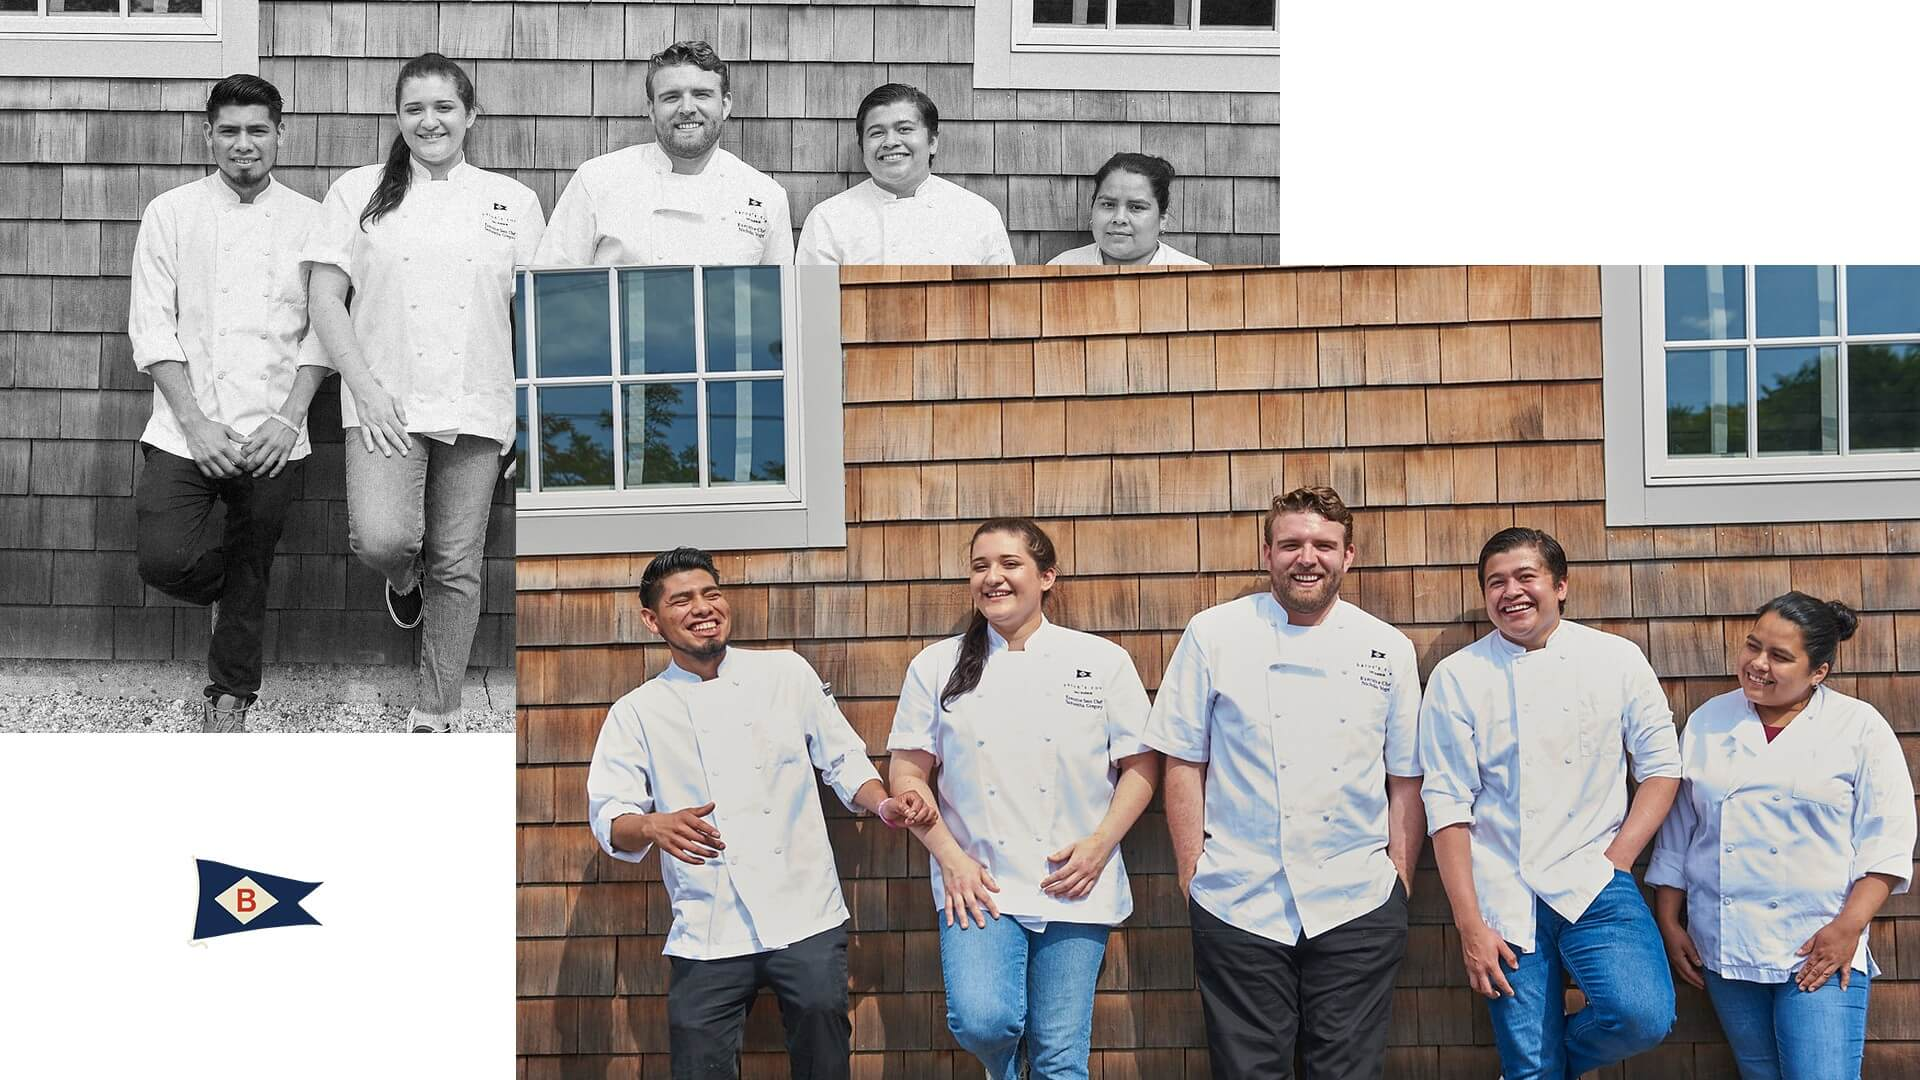 a group shot of the culinary team at baron's cove